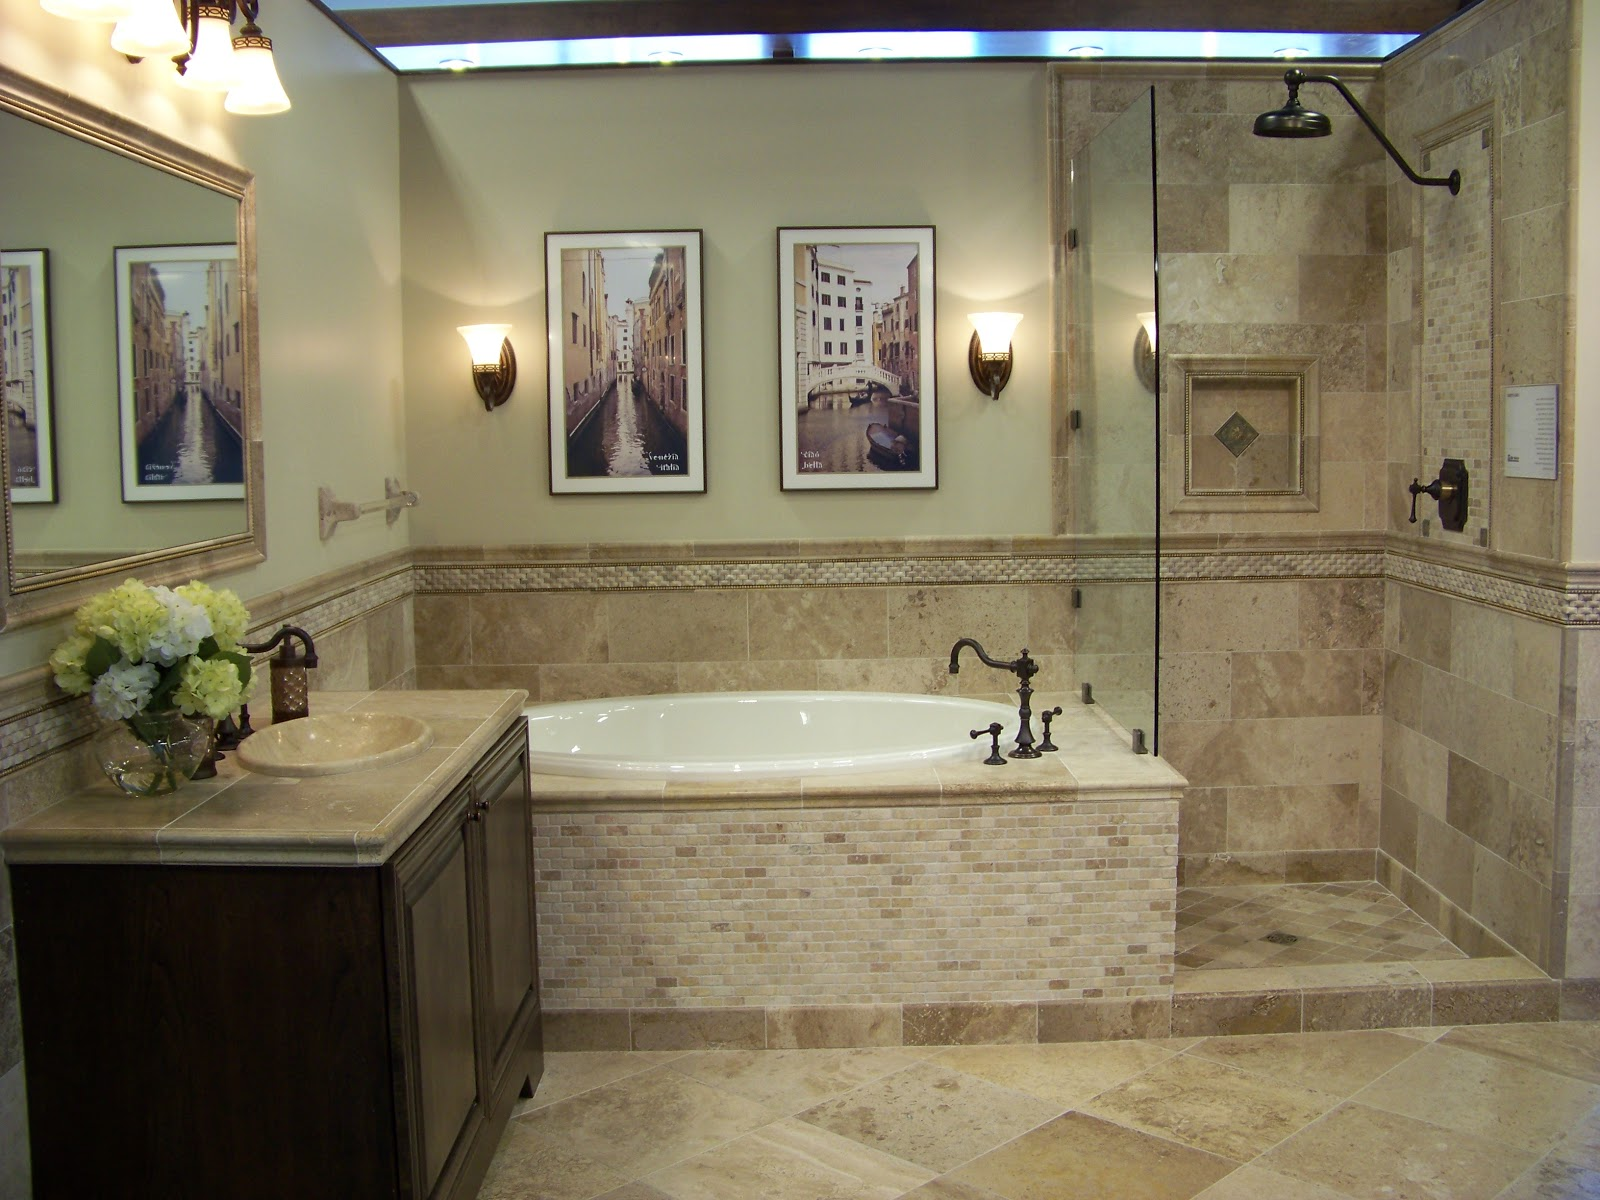 Home Decor Budgetista: Bathroom Inspiration - The Tile Shop